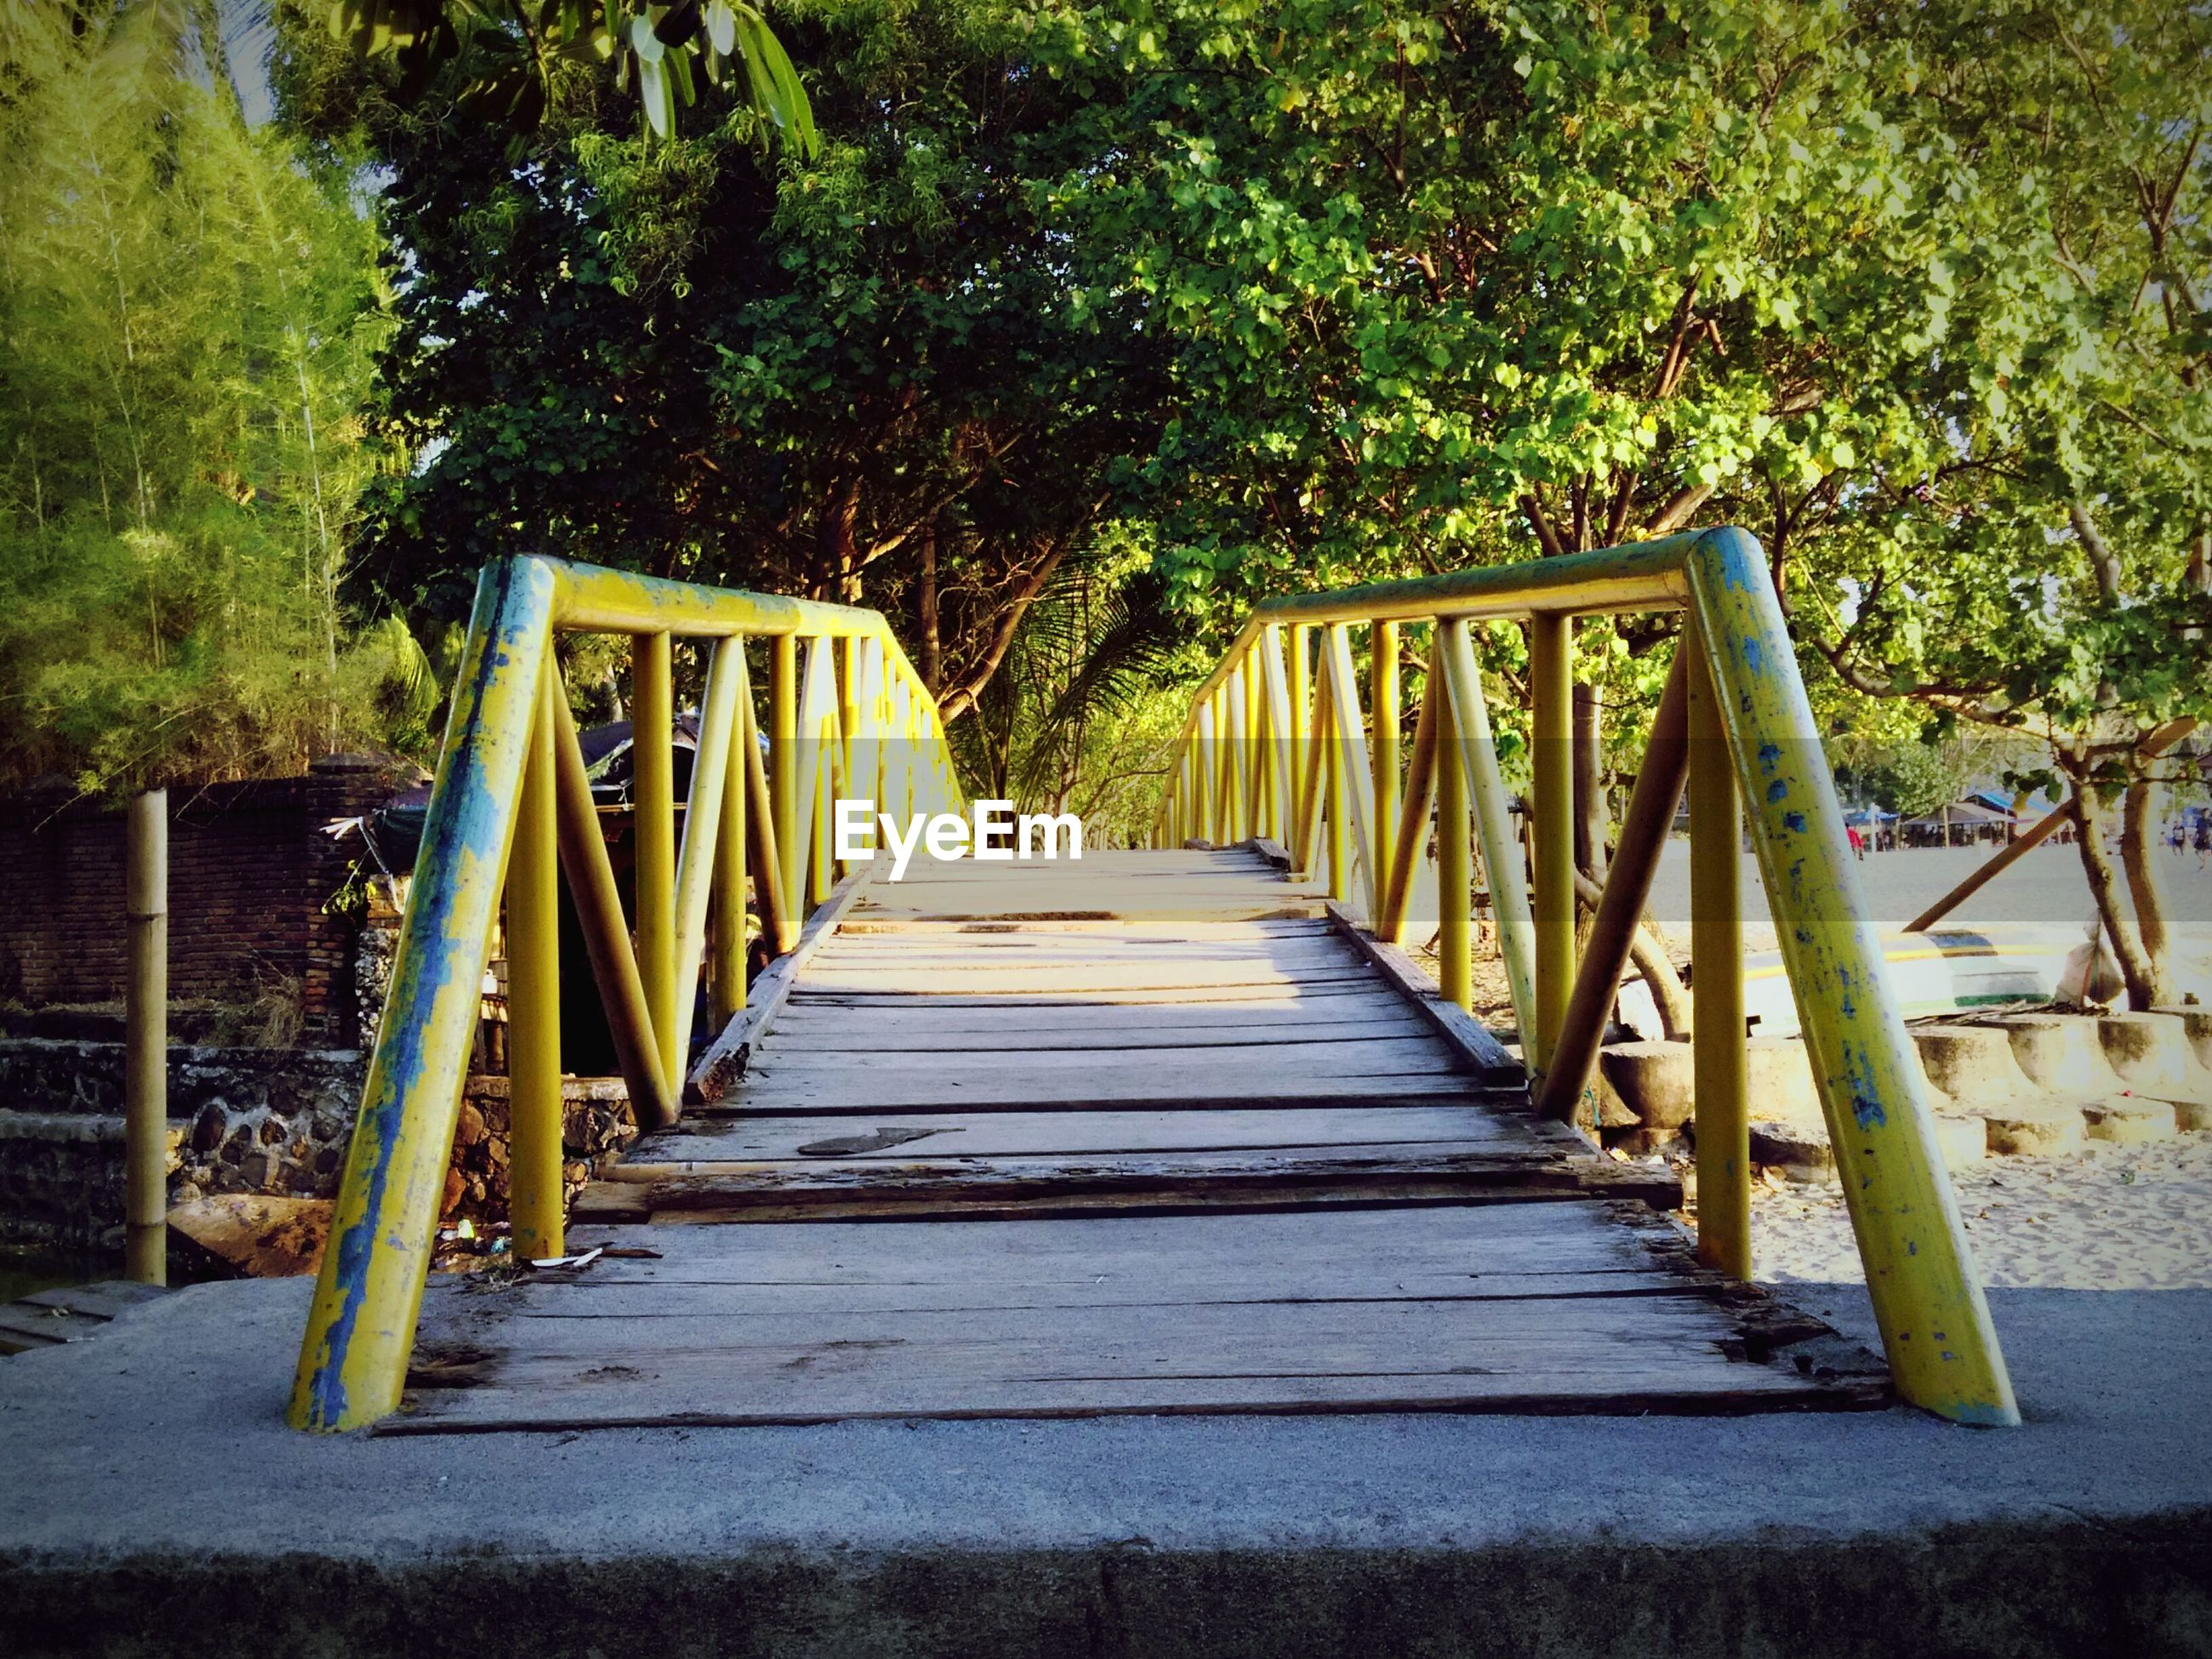 the way forward, railing, tree, footbridge, diminishing perspective, wood - material, connection, built structure, bridge - man made structure, vanishing point, wooden, architecture, boardwalk, long, tranquility, nature, no people, walkway, growth, sunlight